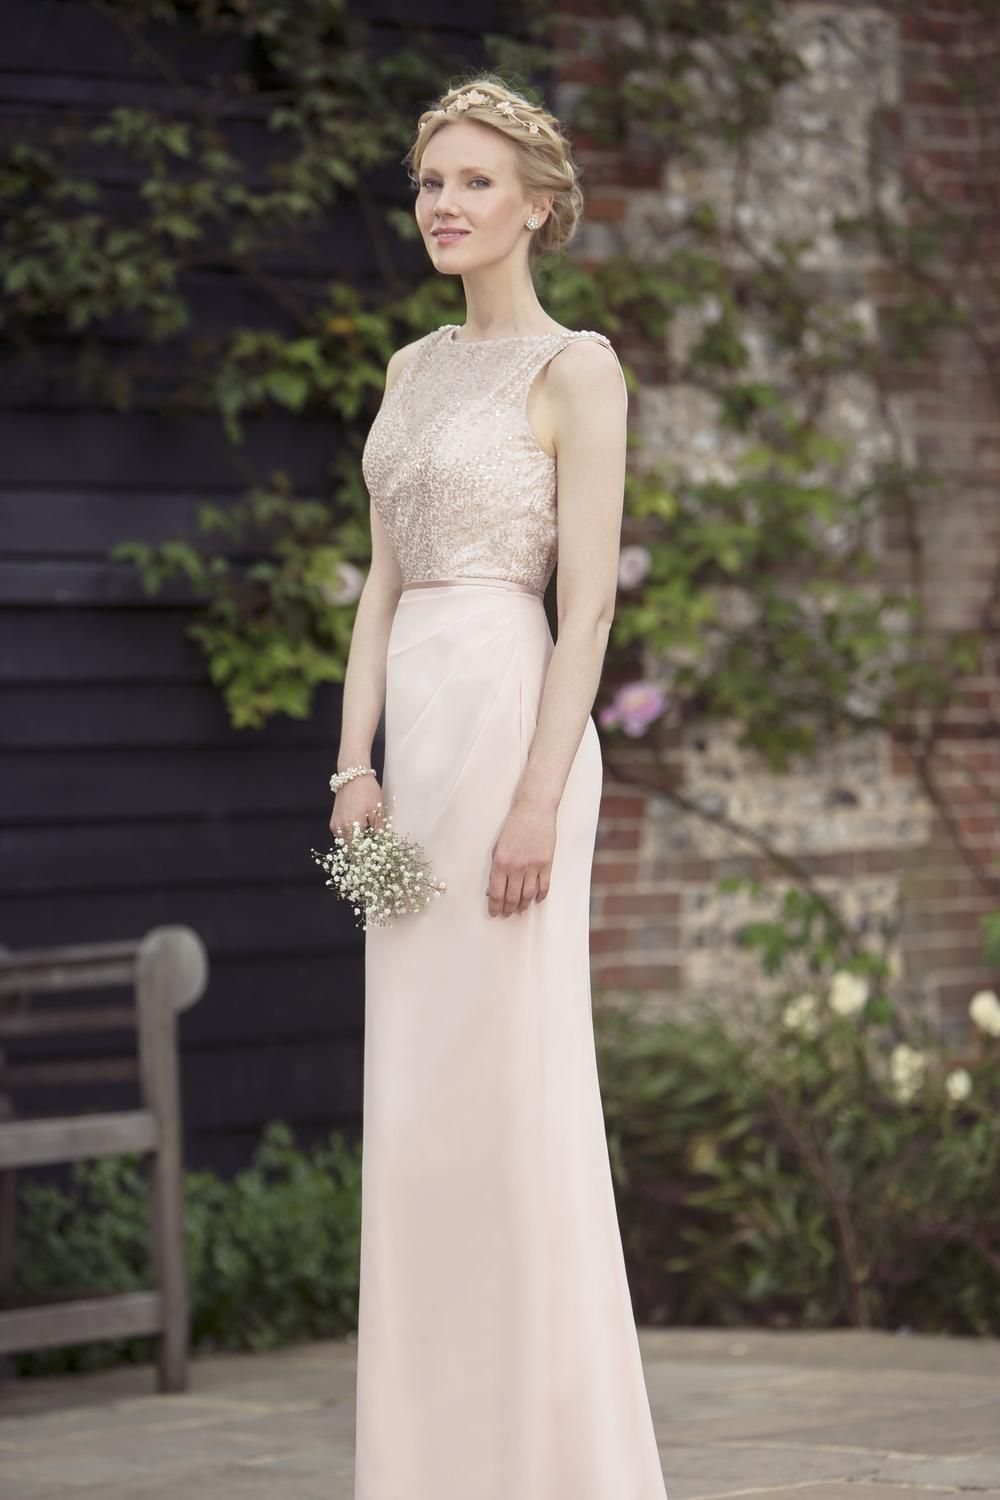 Bridesmaid Dresses — Cathedral Belles of Worcester